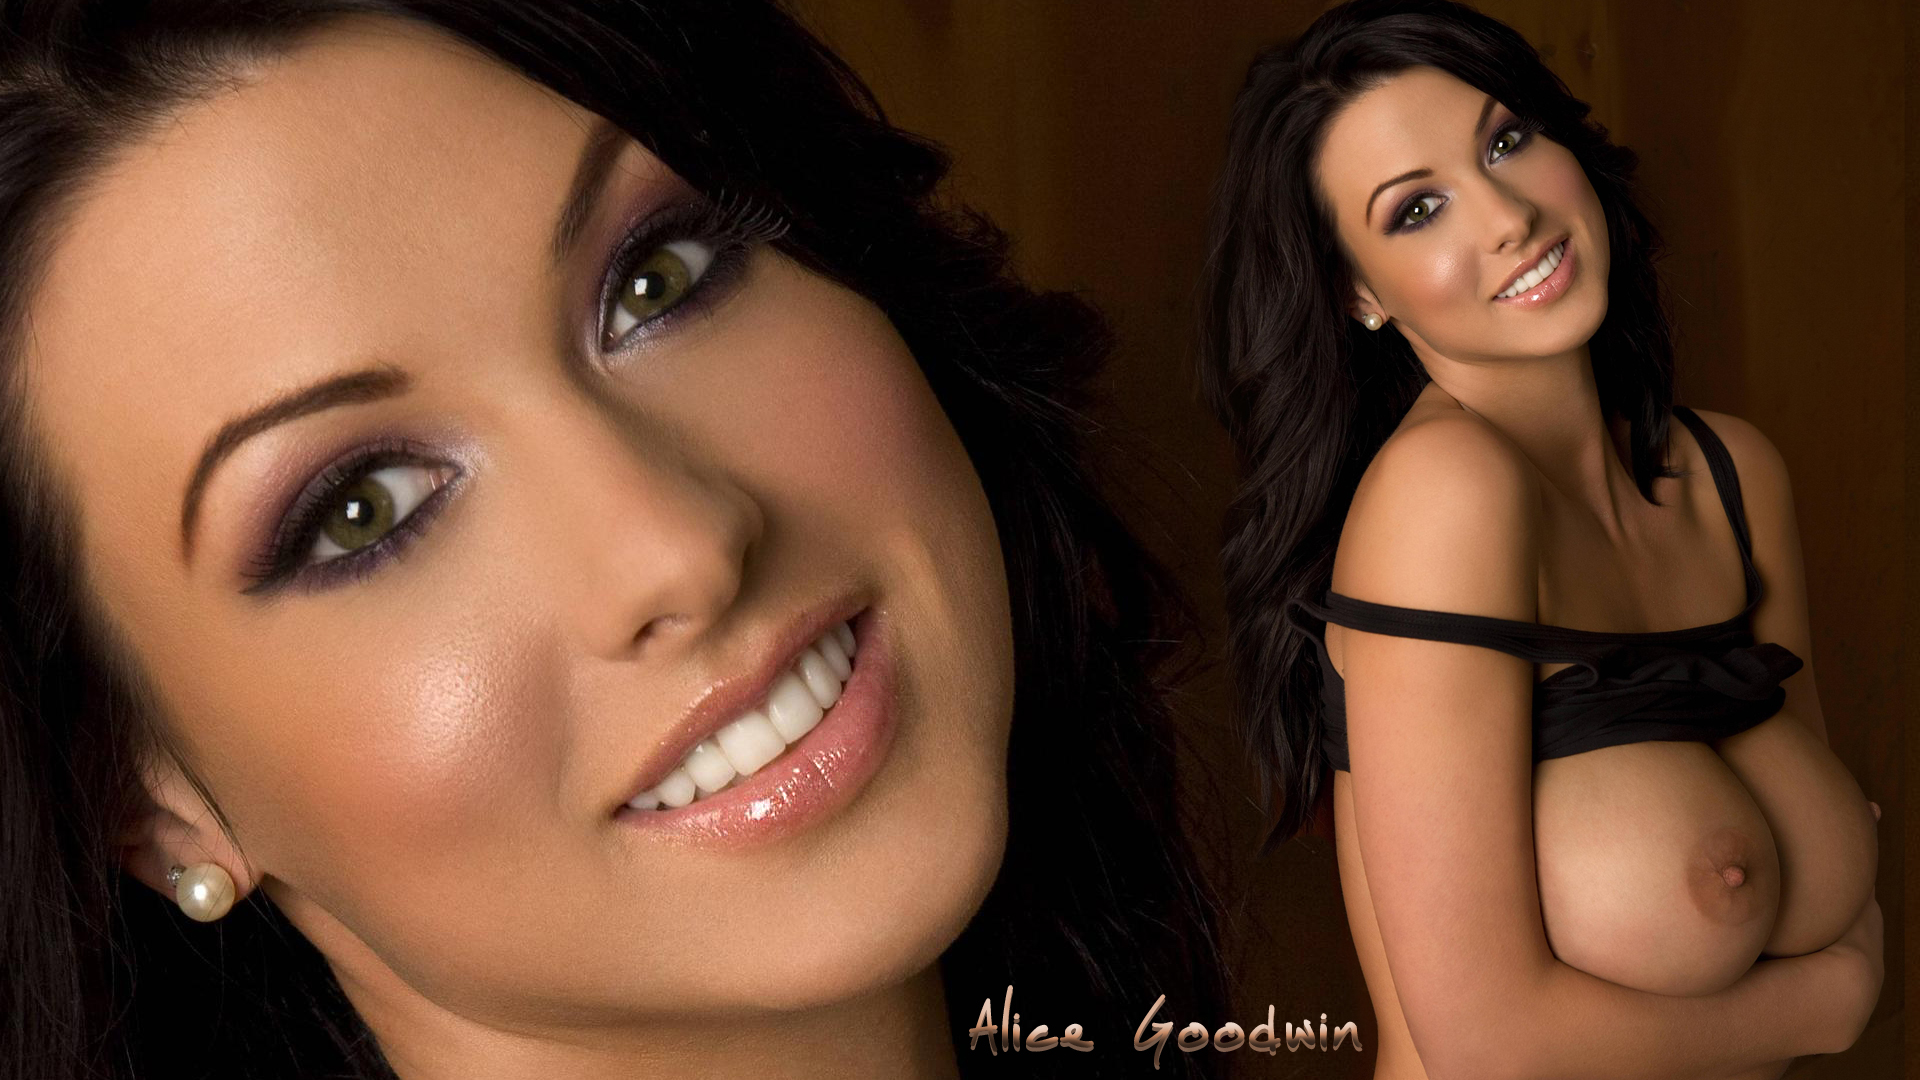 Alice Goodwin - Smile - 1920x1080 - Wall,